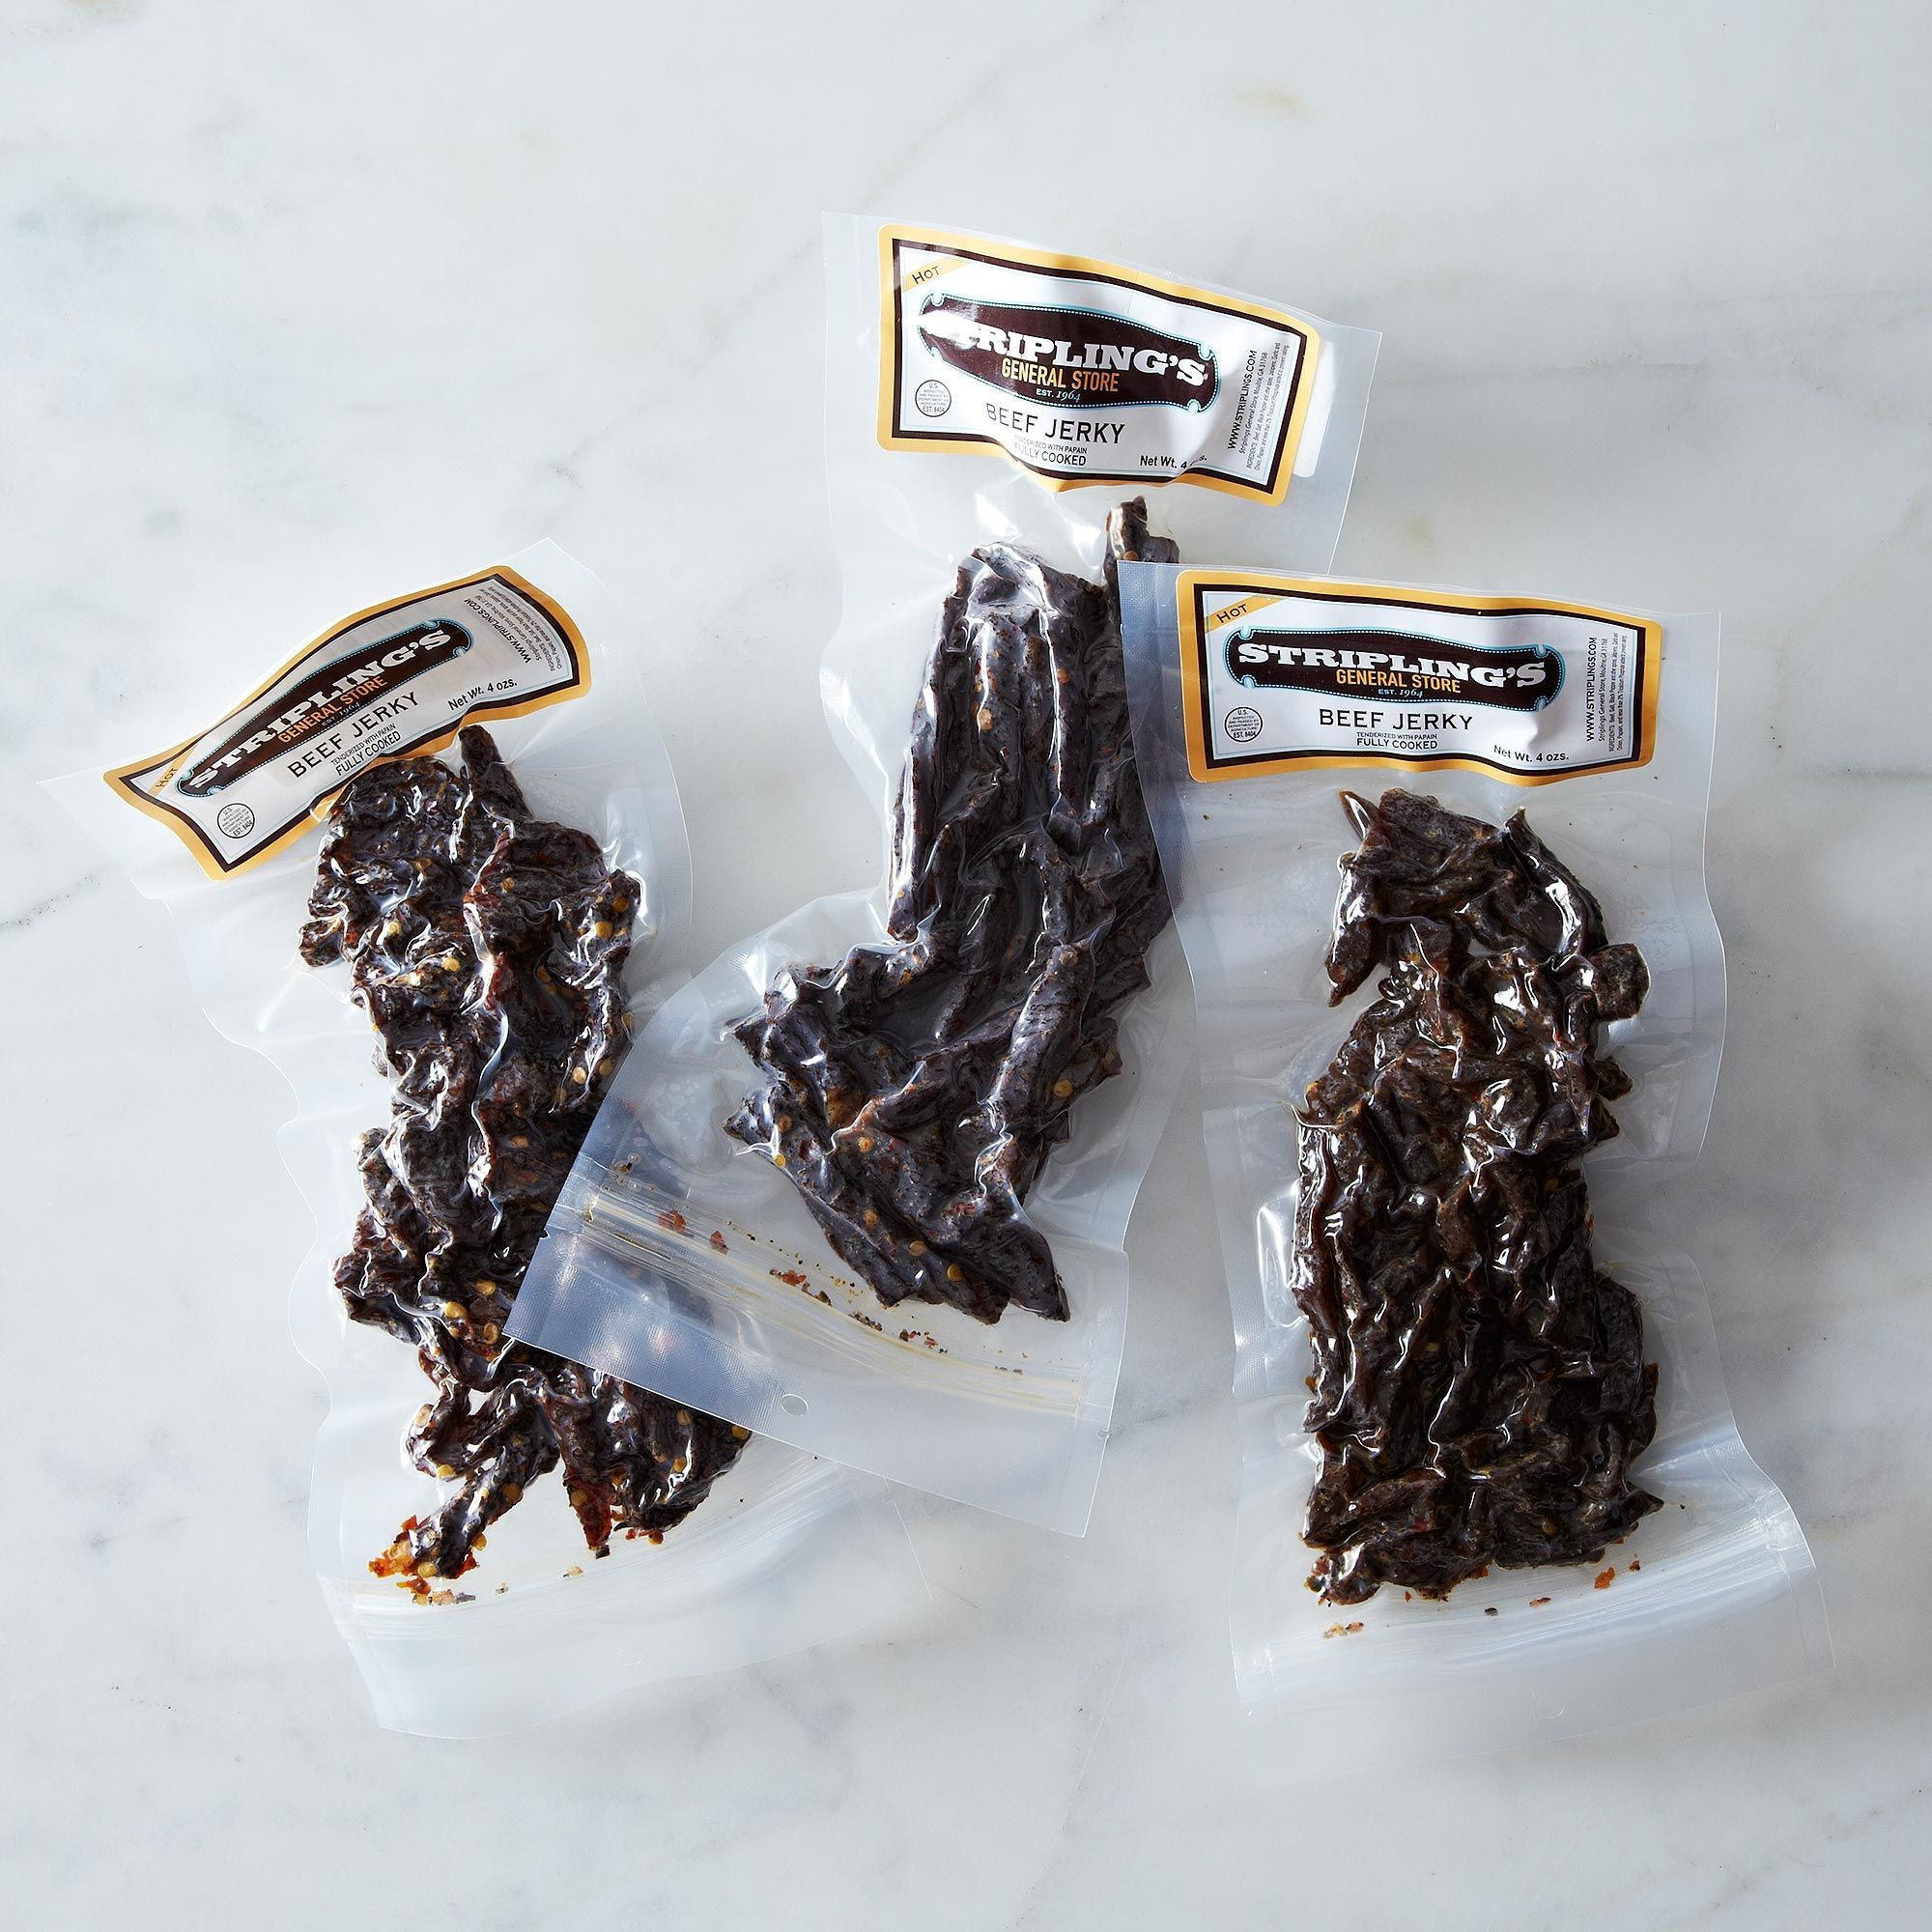 C030bd9c a0f5 11e5 a190 0ef7535729df  2014 0109 striplings beef jerky hot 005